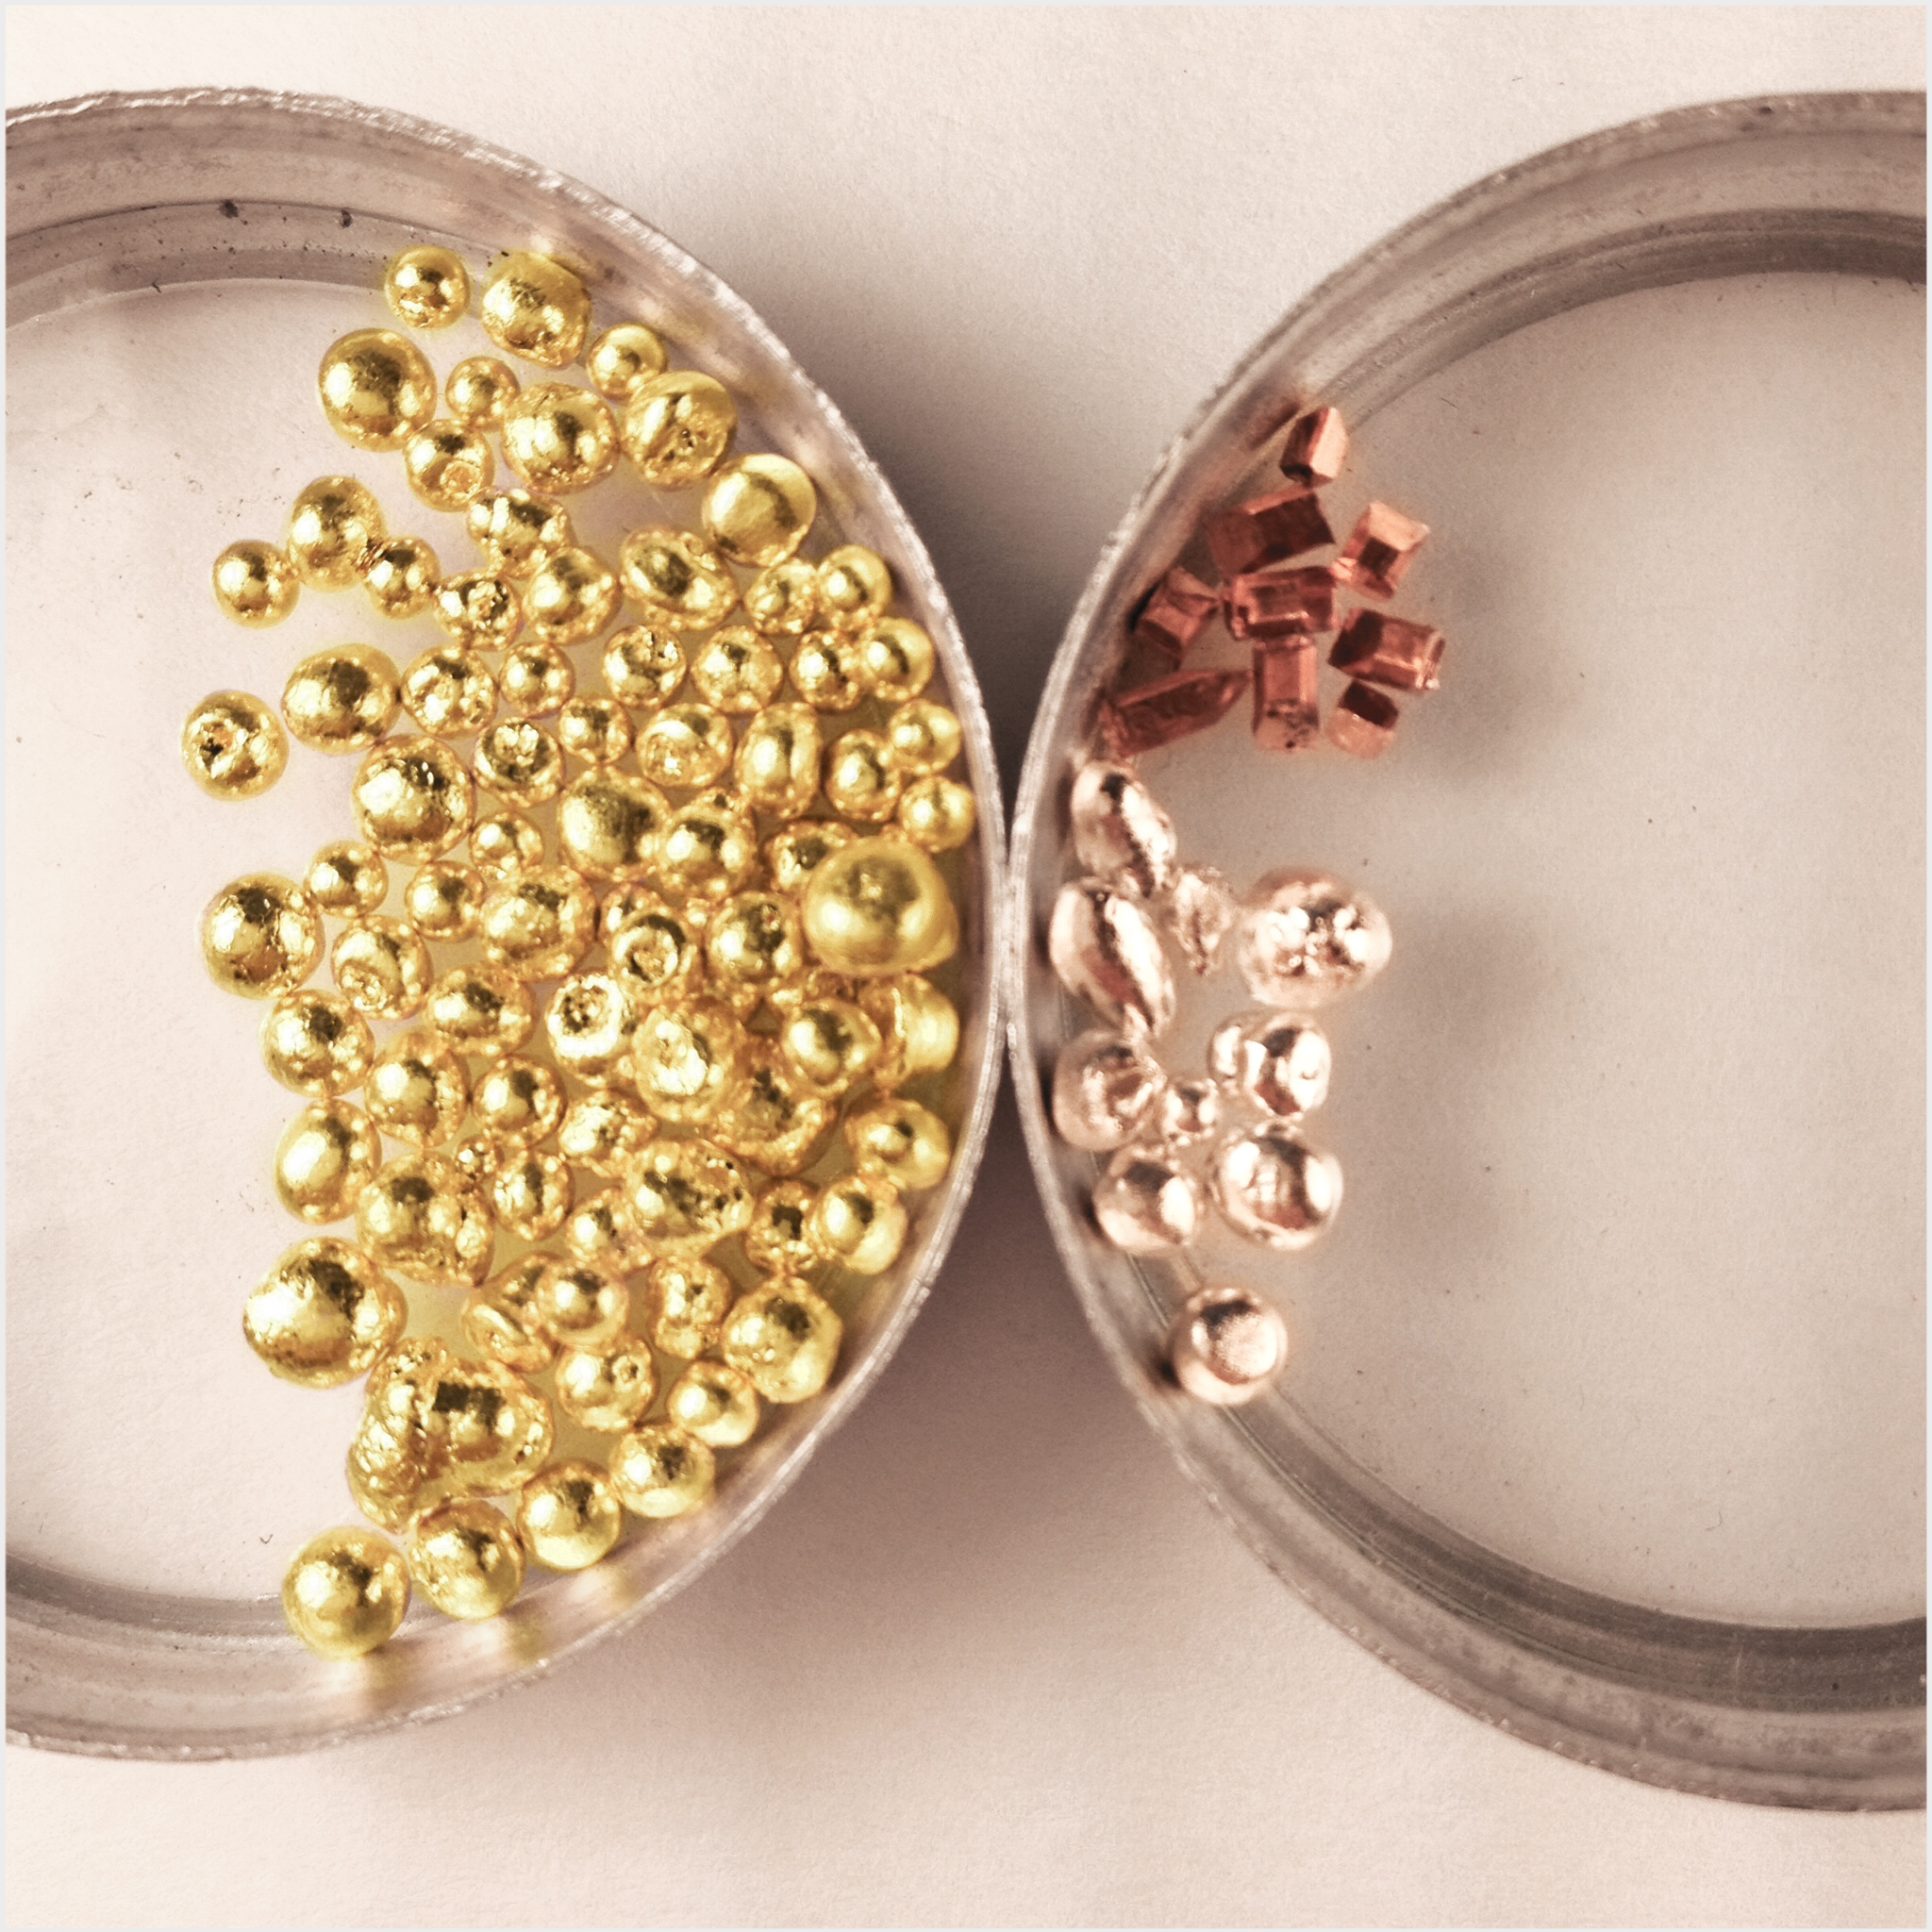 fair mined gold + copper + silver ready for alloying